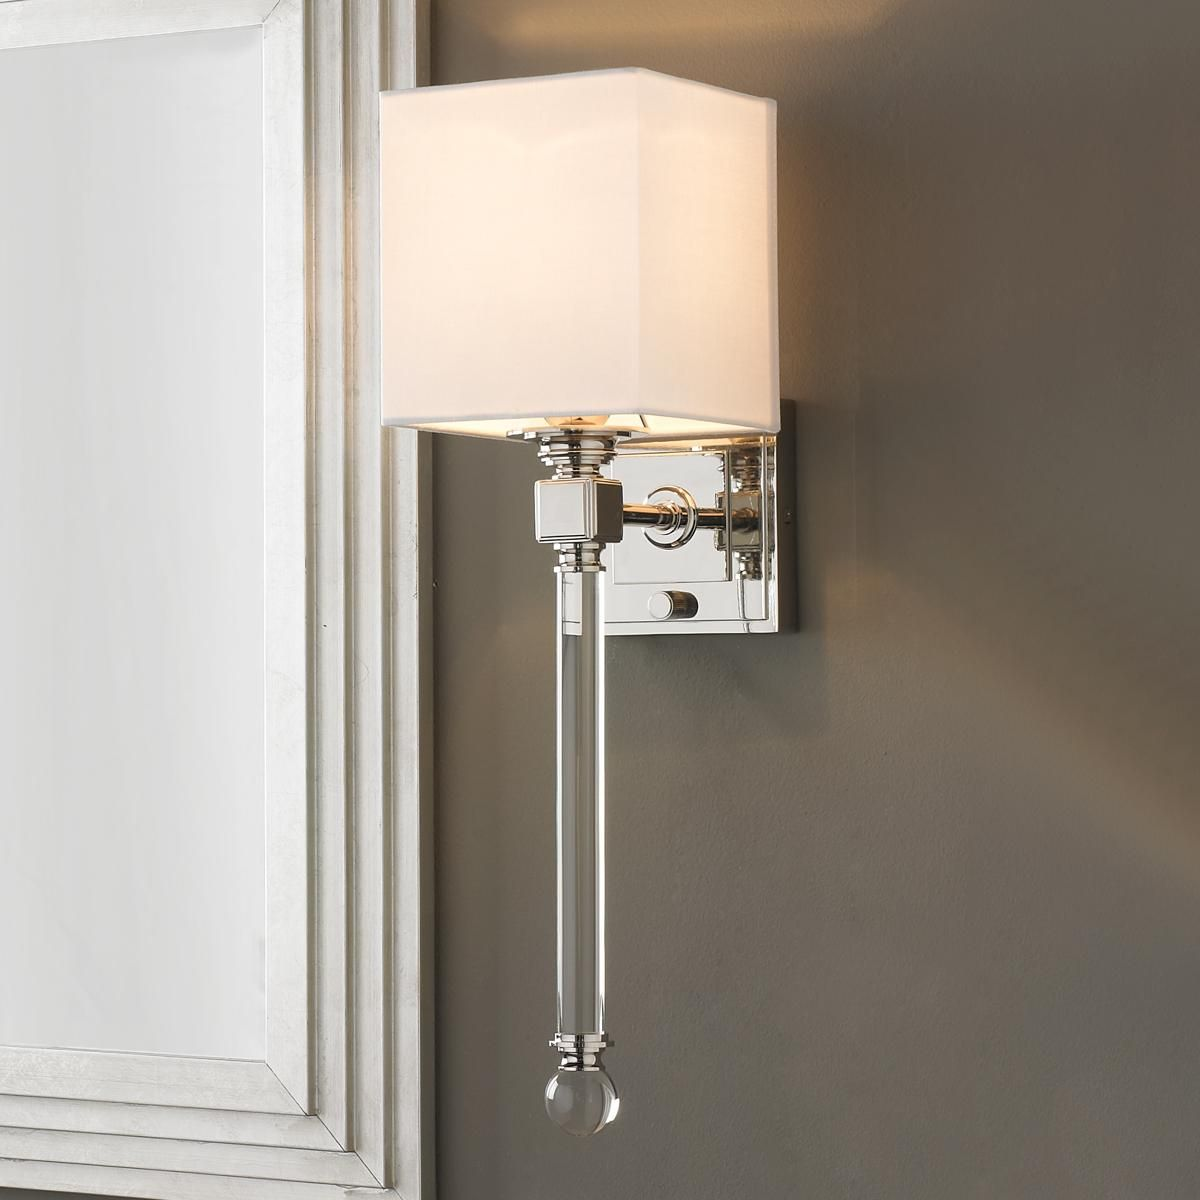 Crystal Wall Sconces Bathroom : Chic Sophisticate Crystal Torch Wall Sconce Torches, Wall sconces and Crystals